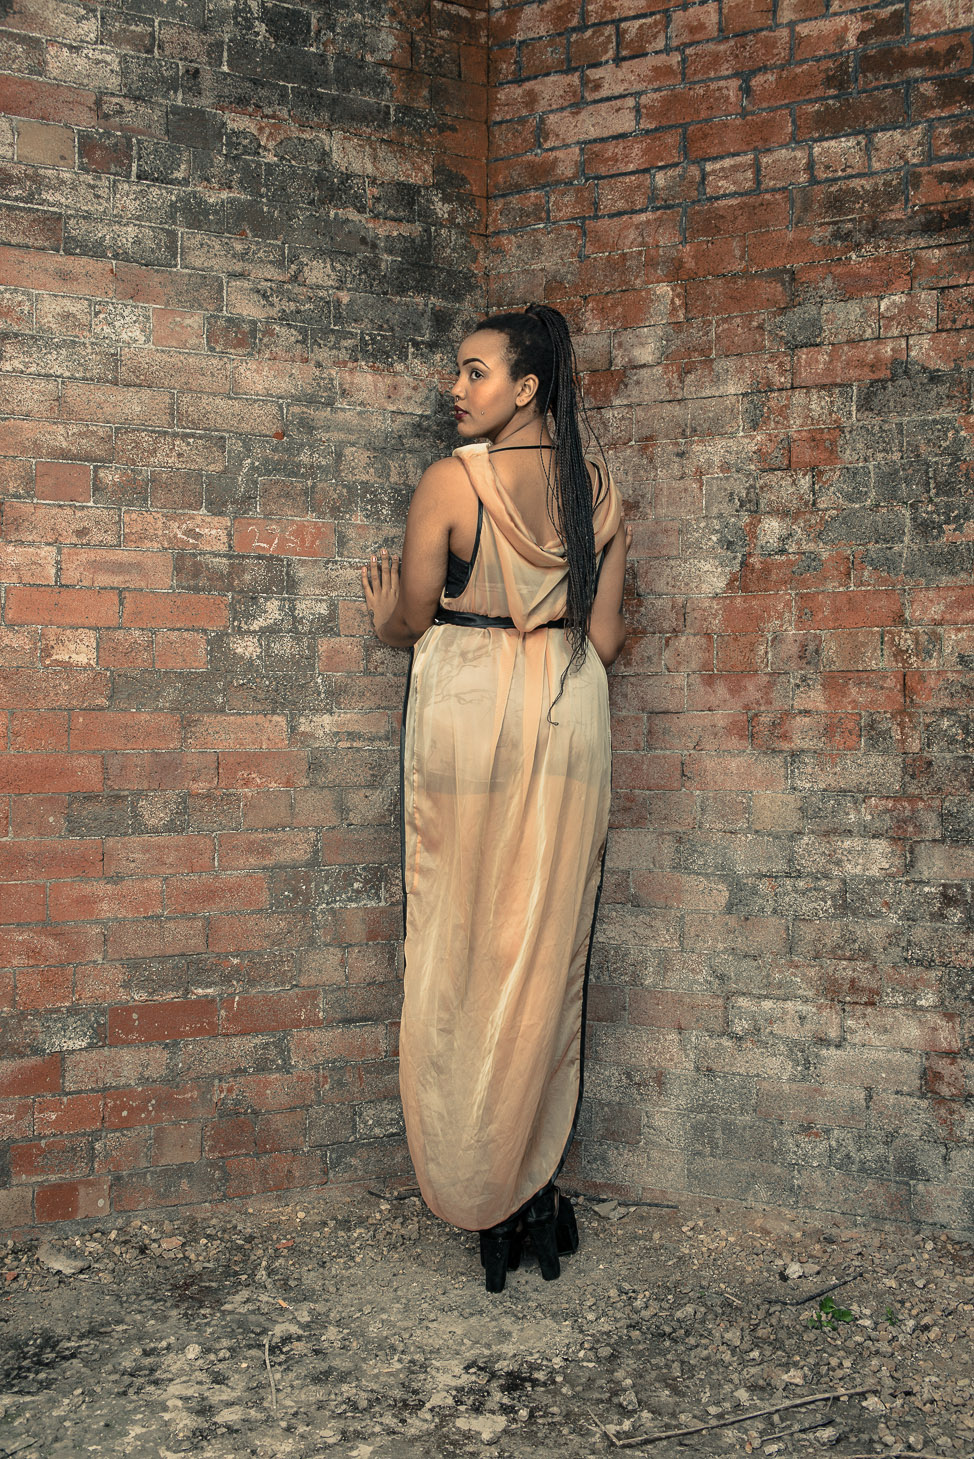 zaramia-ava-zaramiaava-leeds-fashion-designer-ethical-sustainable-tailored-minimalist-sheer-versatile-drape-dress-gold-binding-belt-wrap-cowl-styling-bodysuit-womenswear-models-photoshoot-location-3